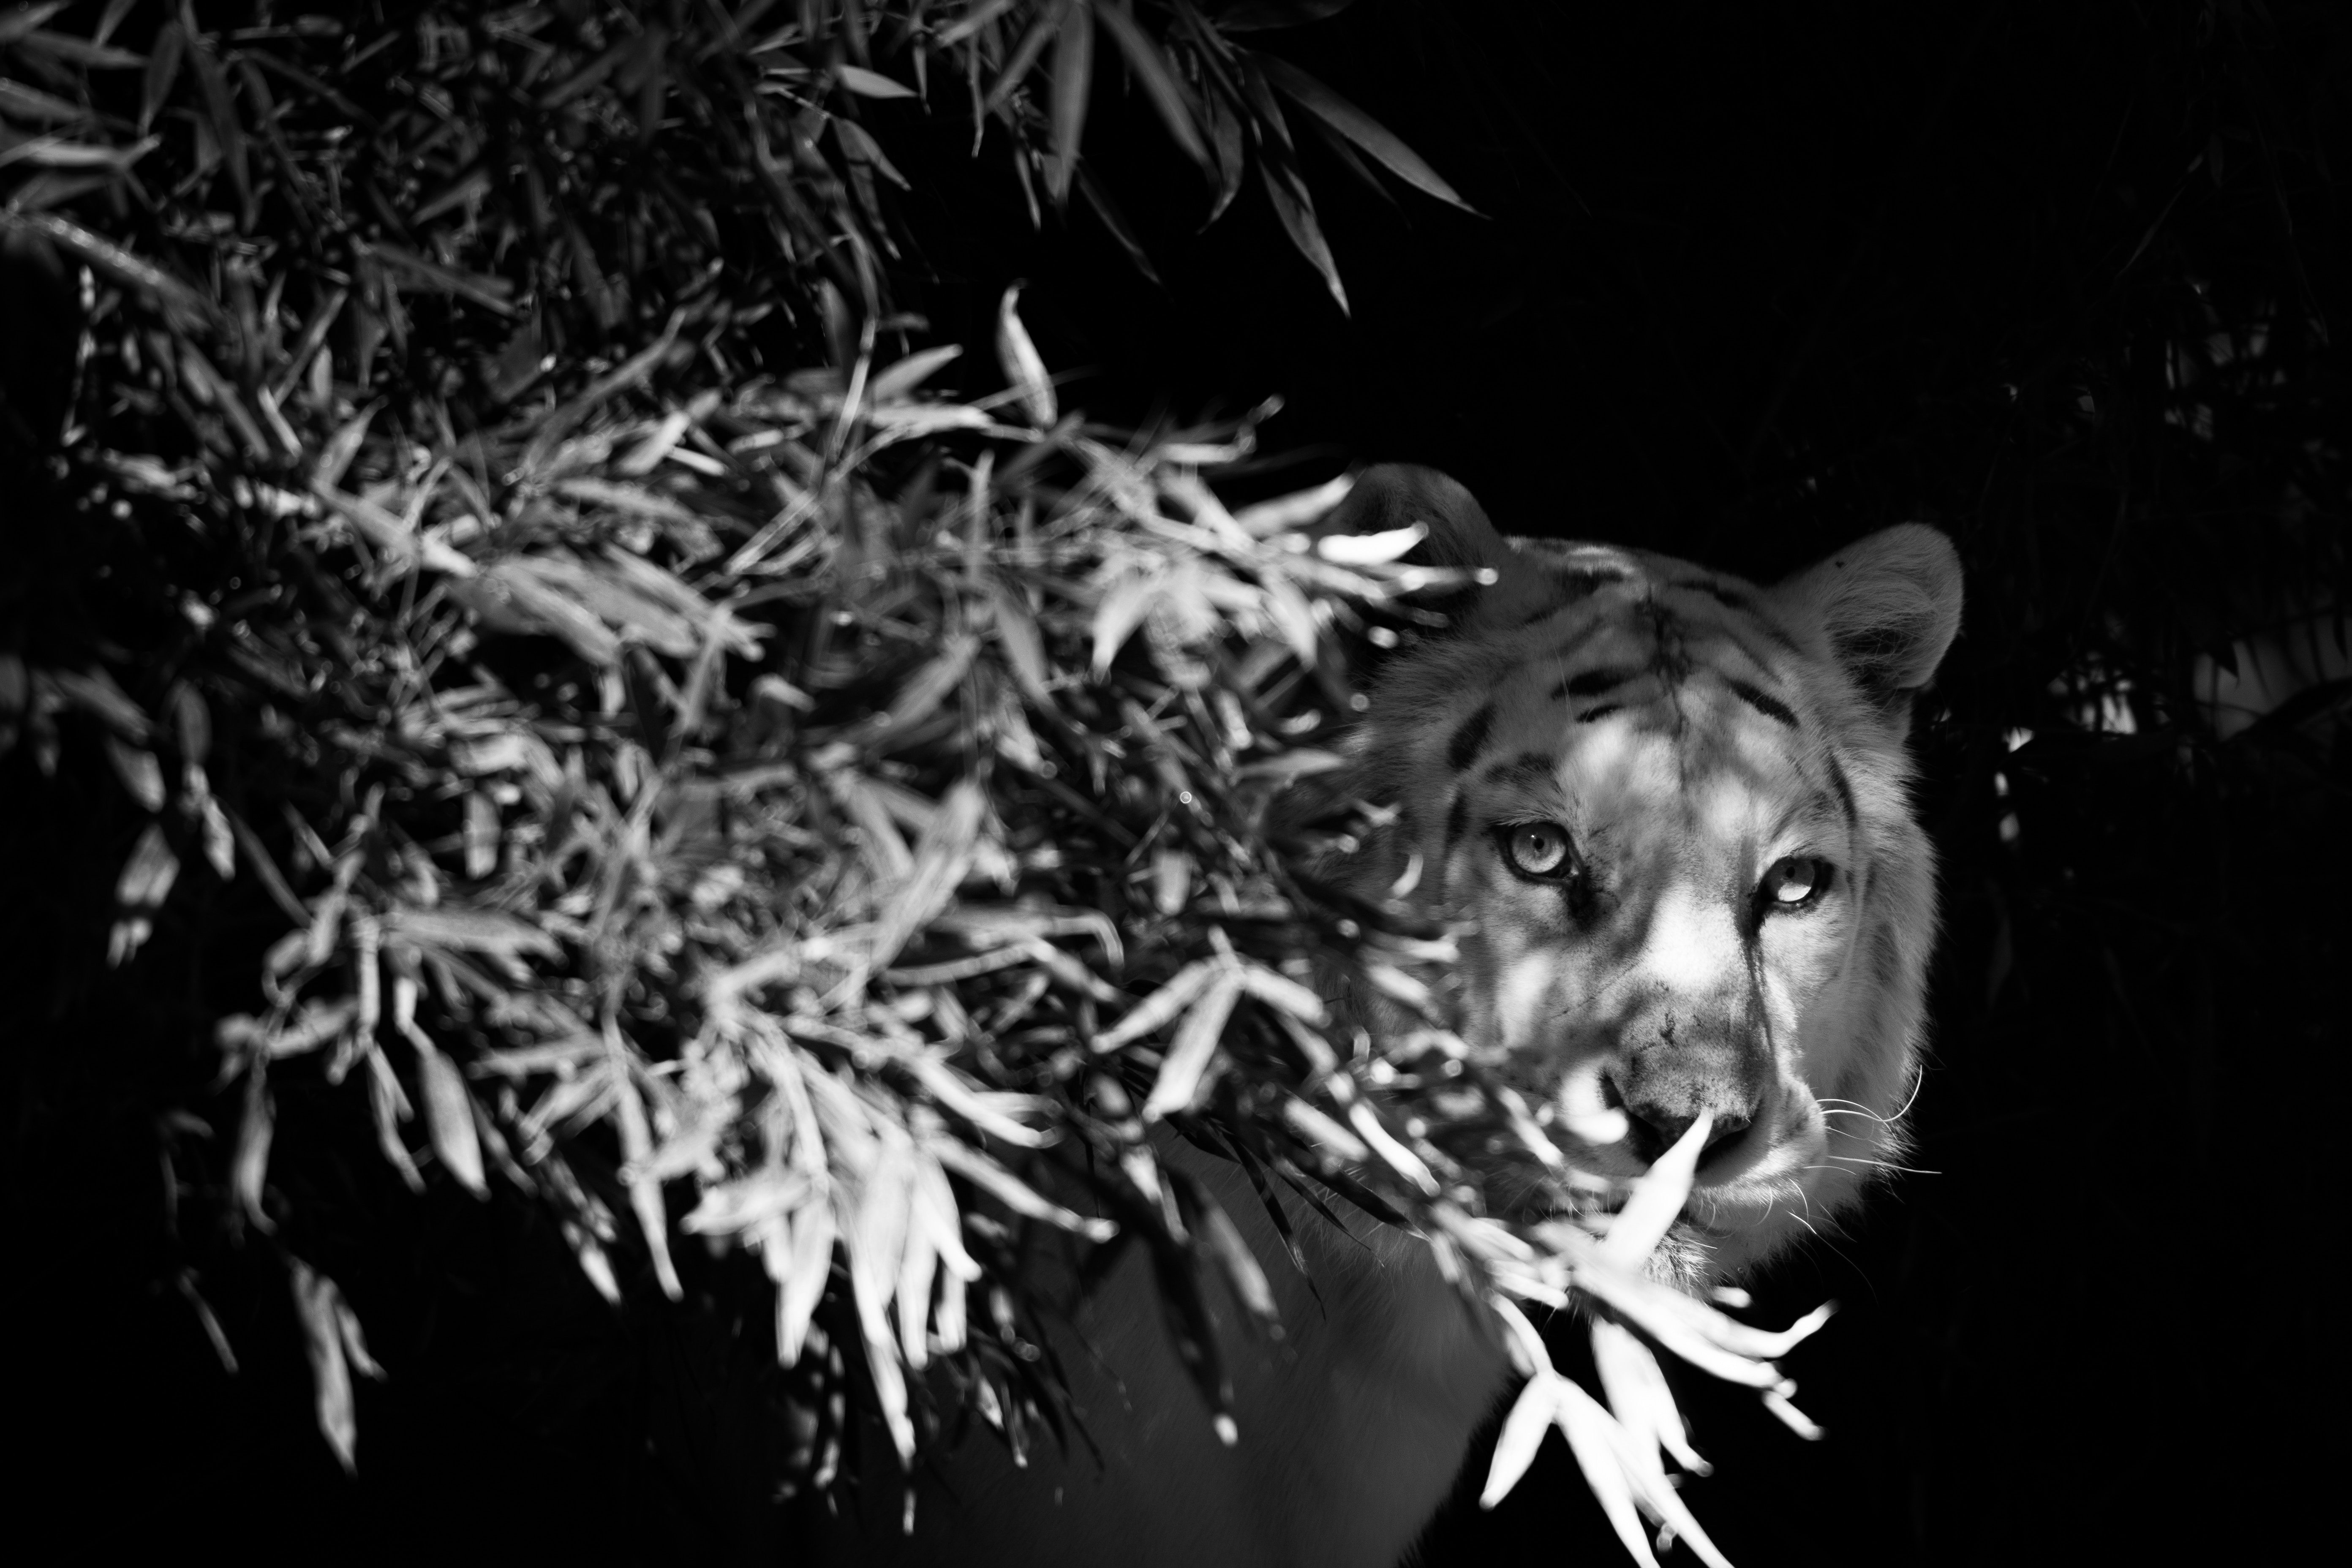 70428 download wallpaper Animals, Tiger, White Tiger, Bw, Chb, Hide, Branches screensavers and pictures for free